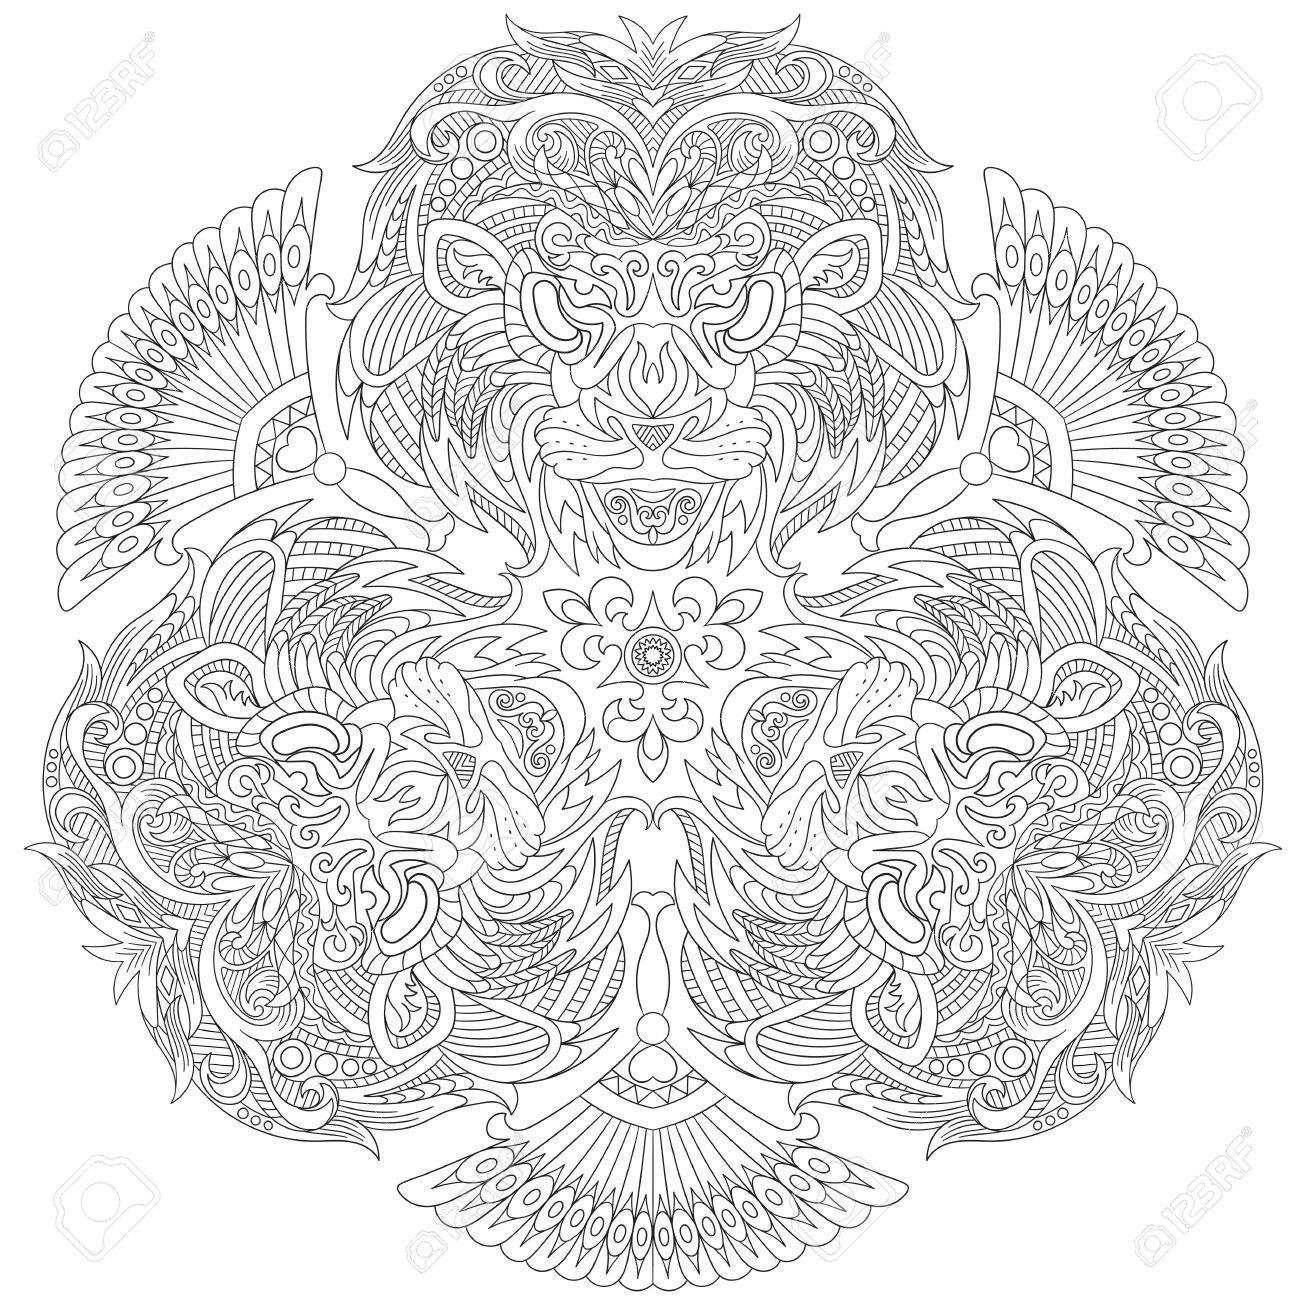 Coloring book for adults lion - Anti Stress Coloring Book Lion Stylized Cartoon Three Lion Masks Isolated On White Background Sketch